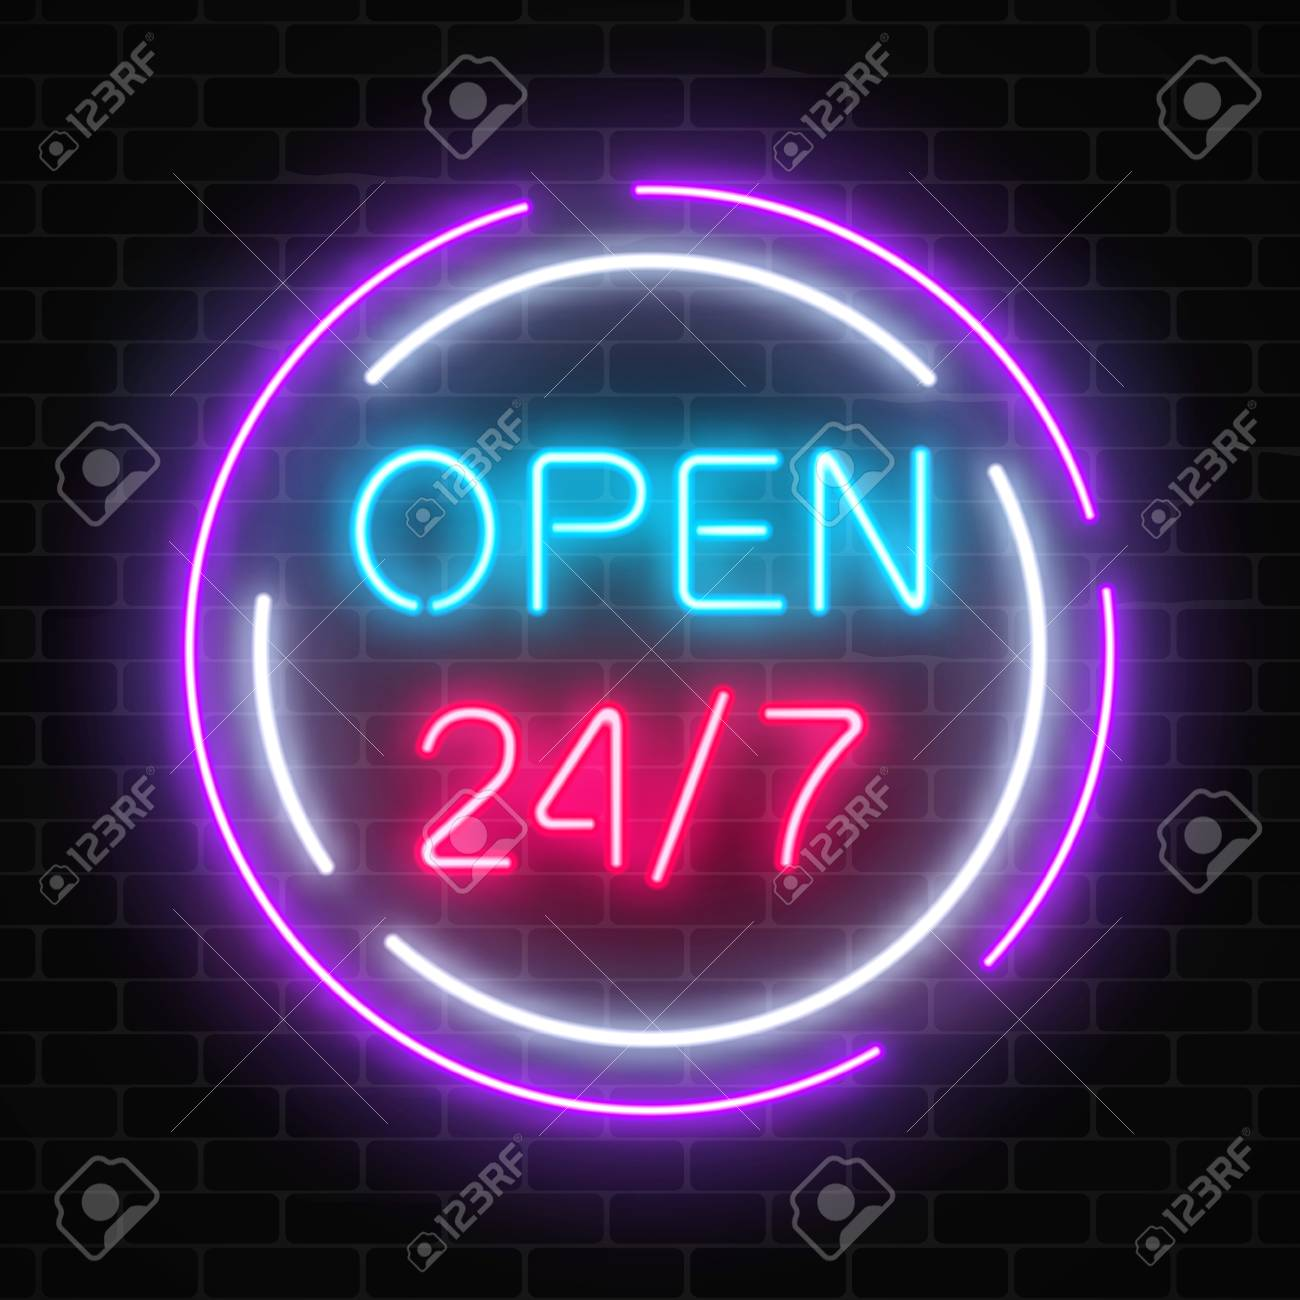 neon open 24 hours 7 days a week sign in circle shaps on a brick